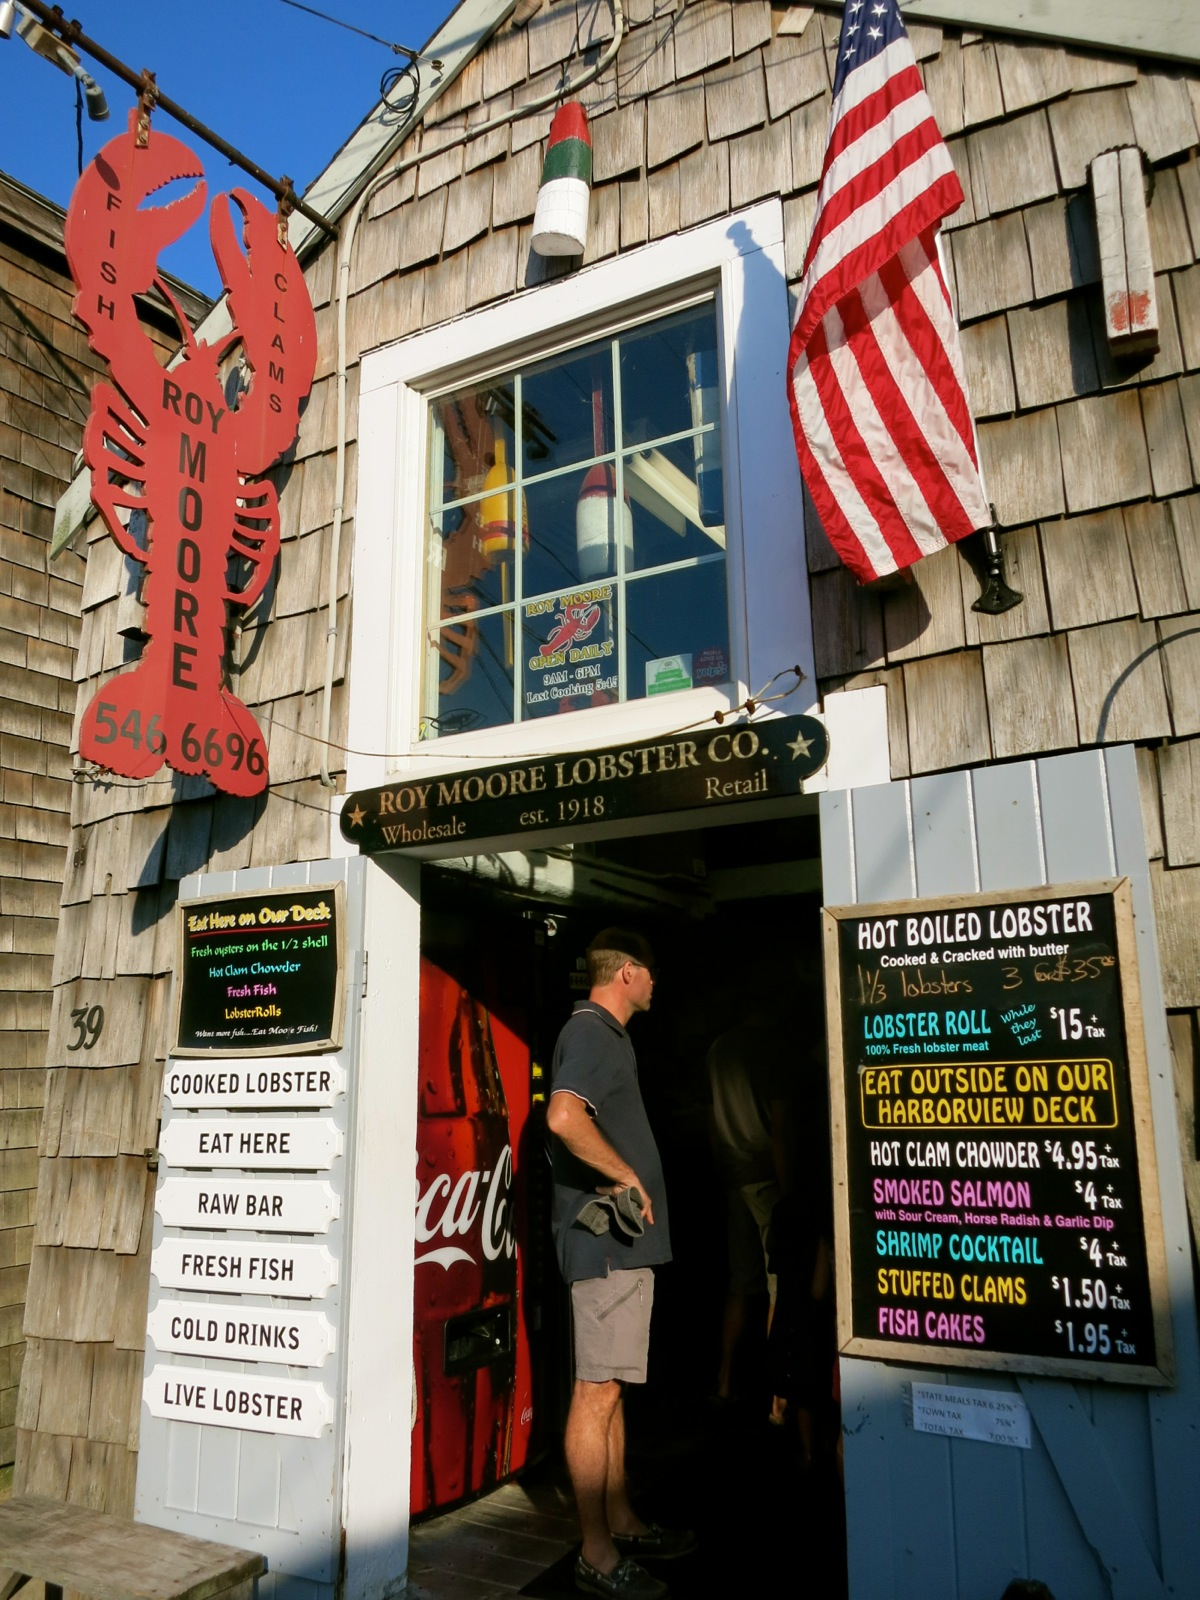 Roy Moore Lobster Co Rockport Ma Eat Budget